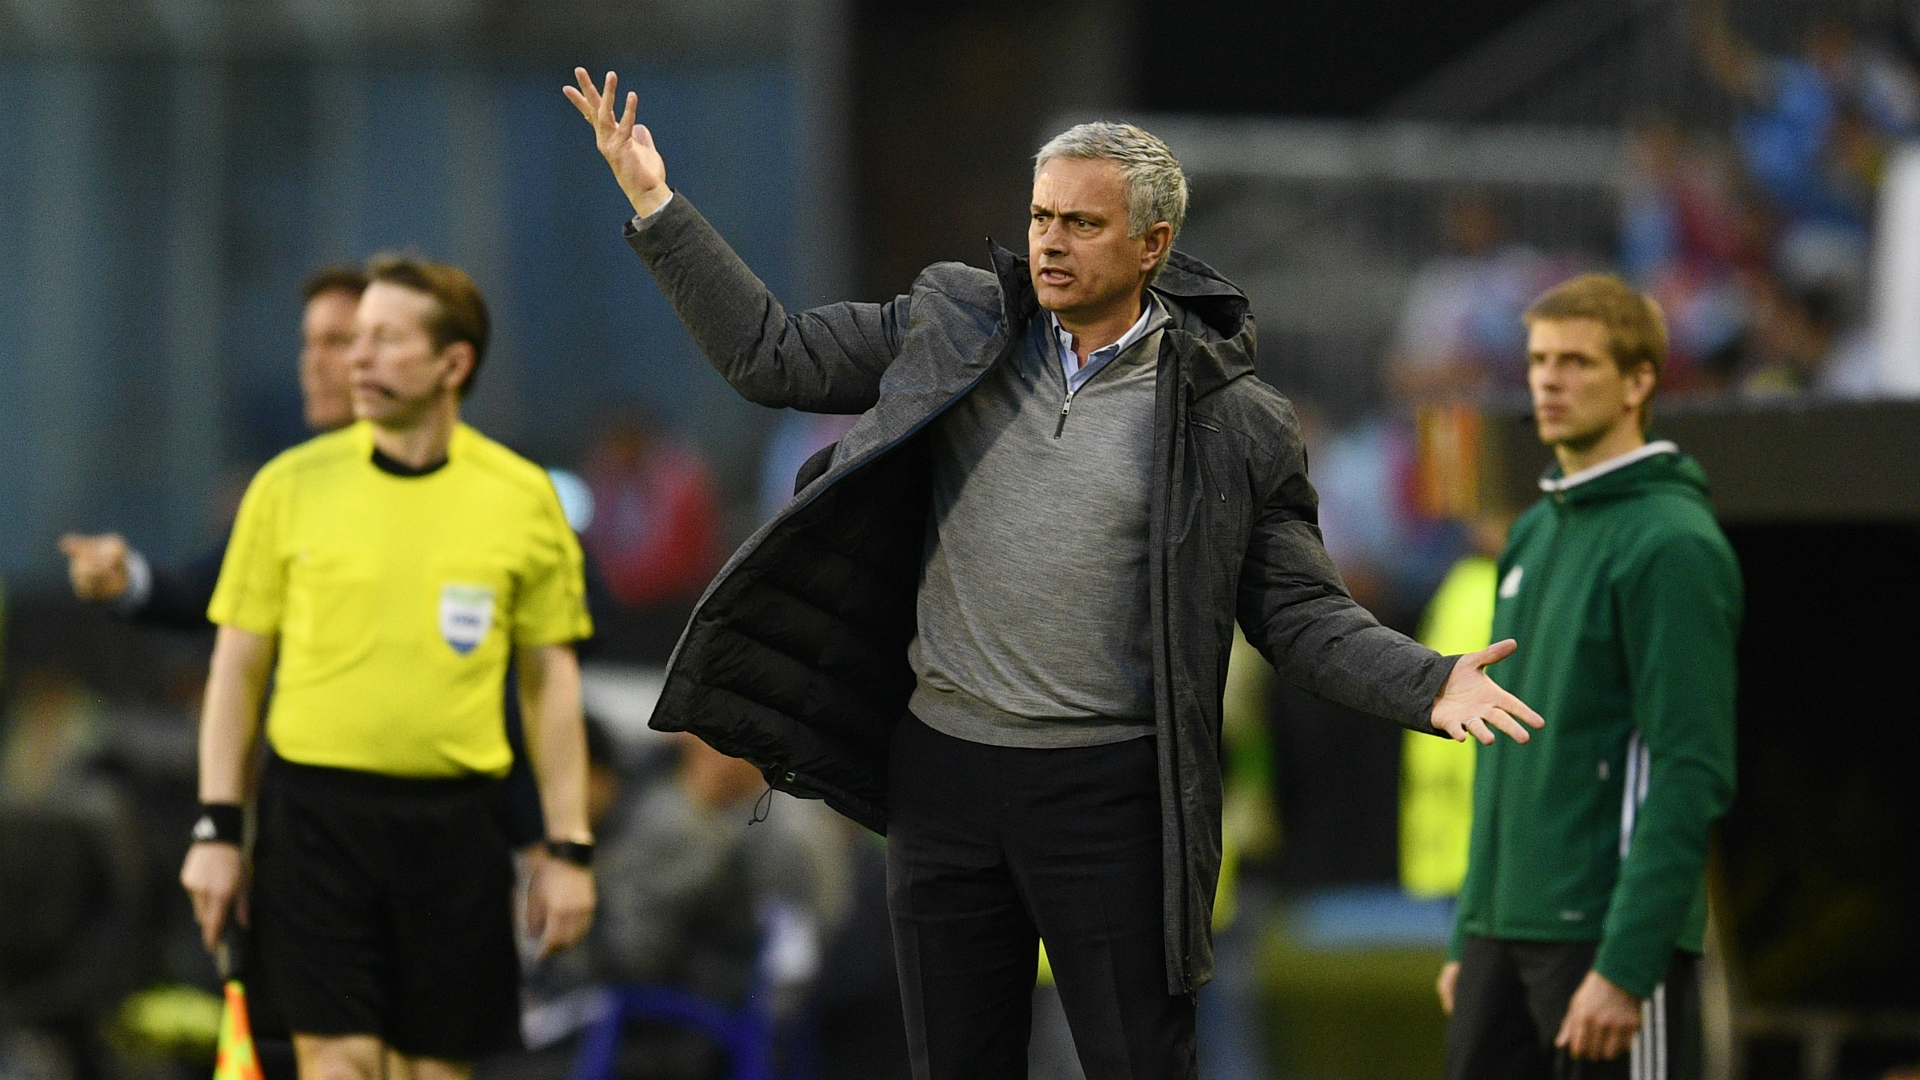 Jose Mourinho criticised: Man United boss was embarrassing over this shocking incident